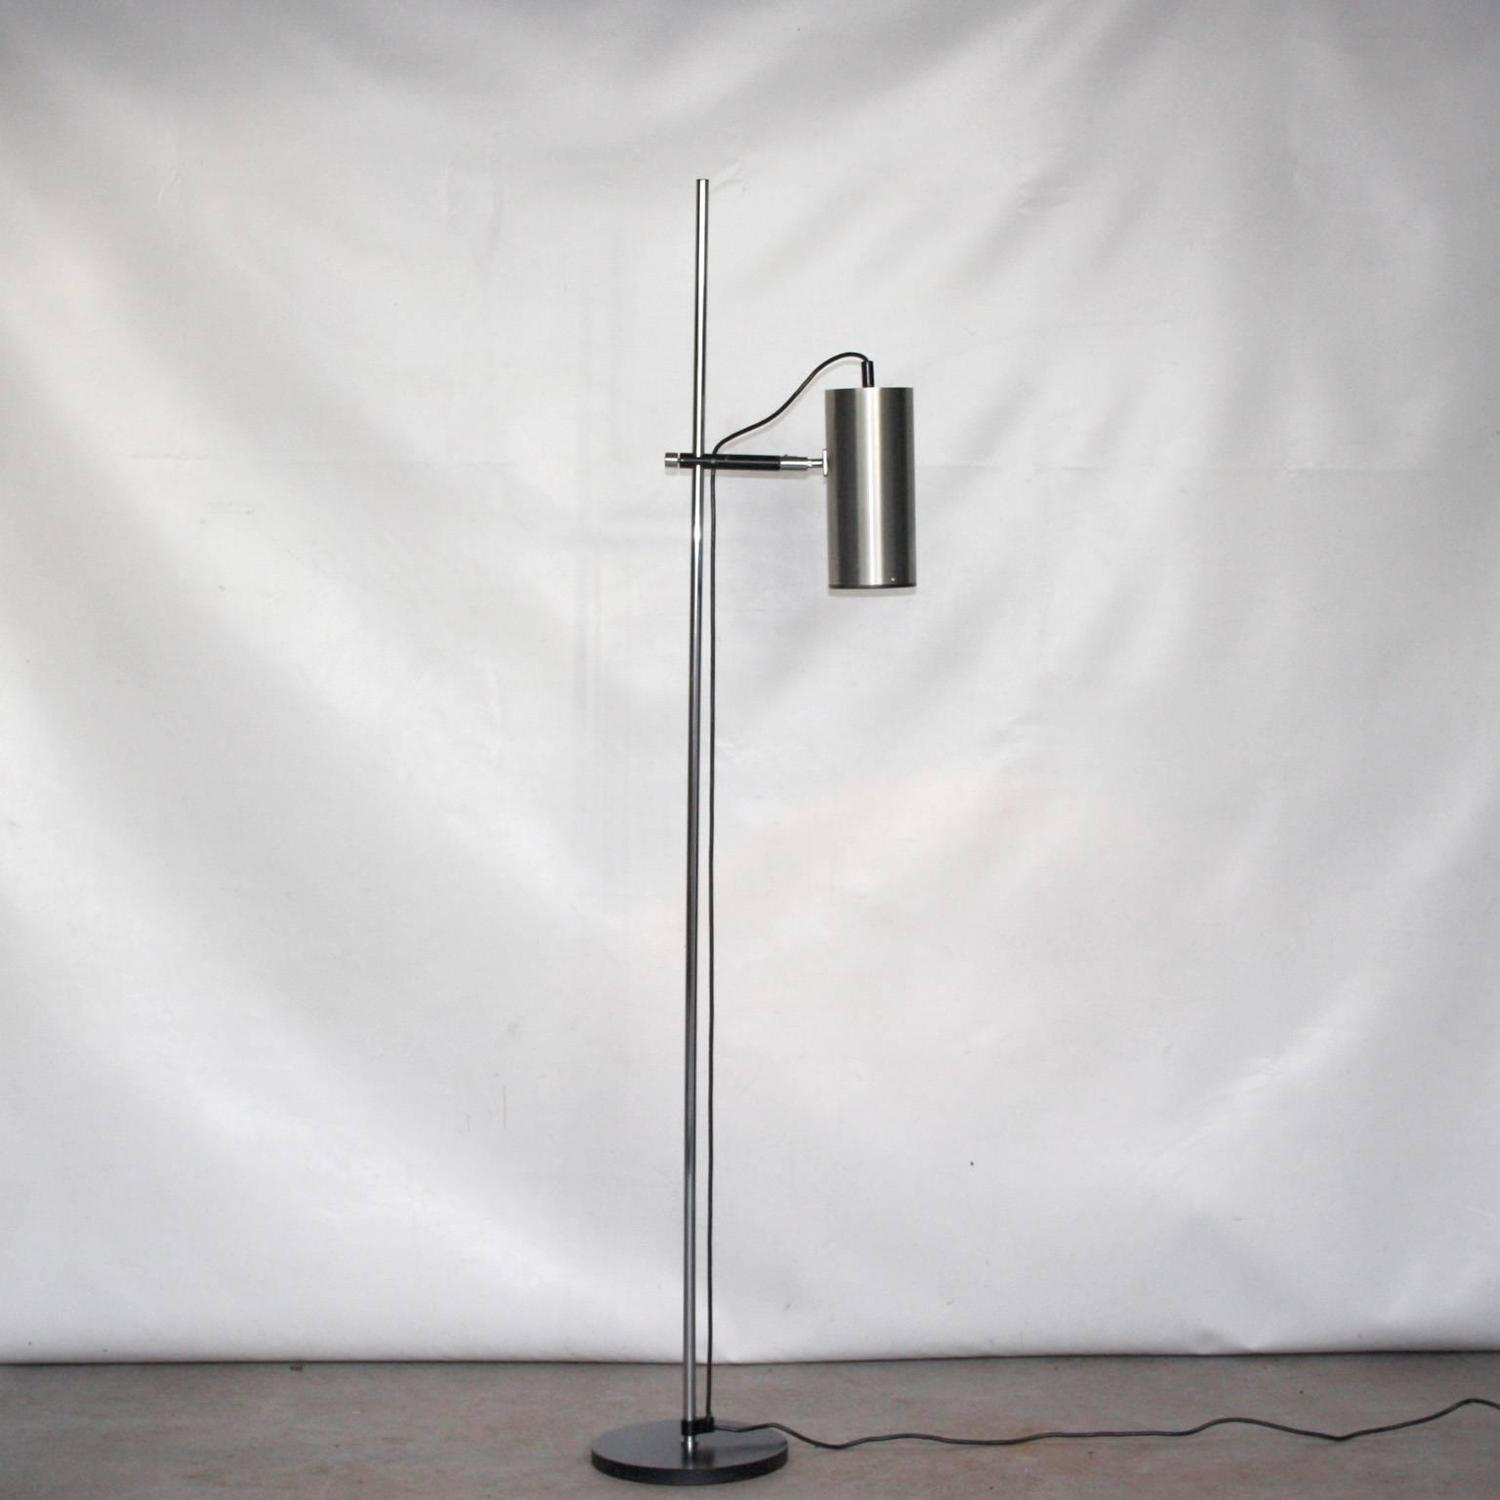 maria pergay stainless steel floor lamp french design 1968 at. Black Bedroom Furniture Sets. Home Design Ideas